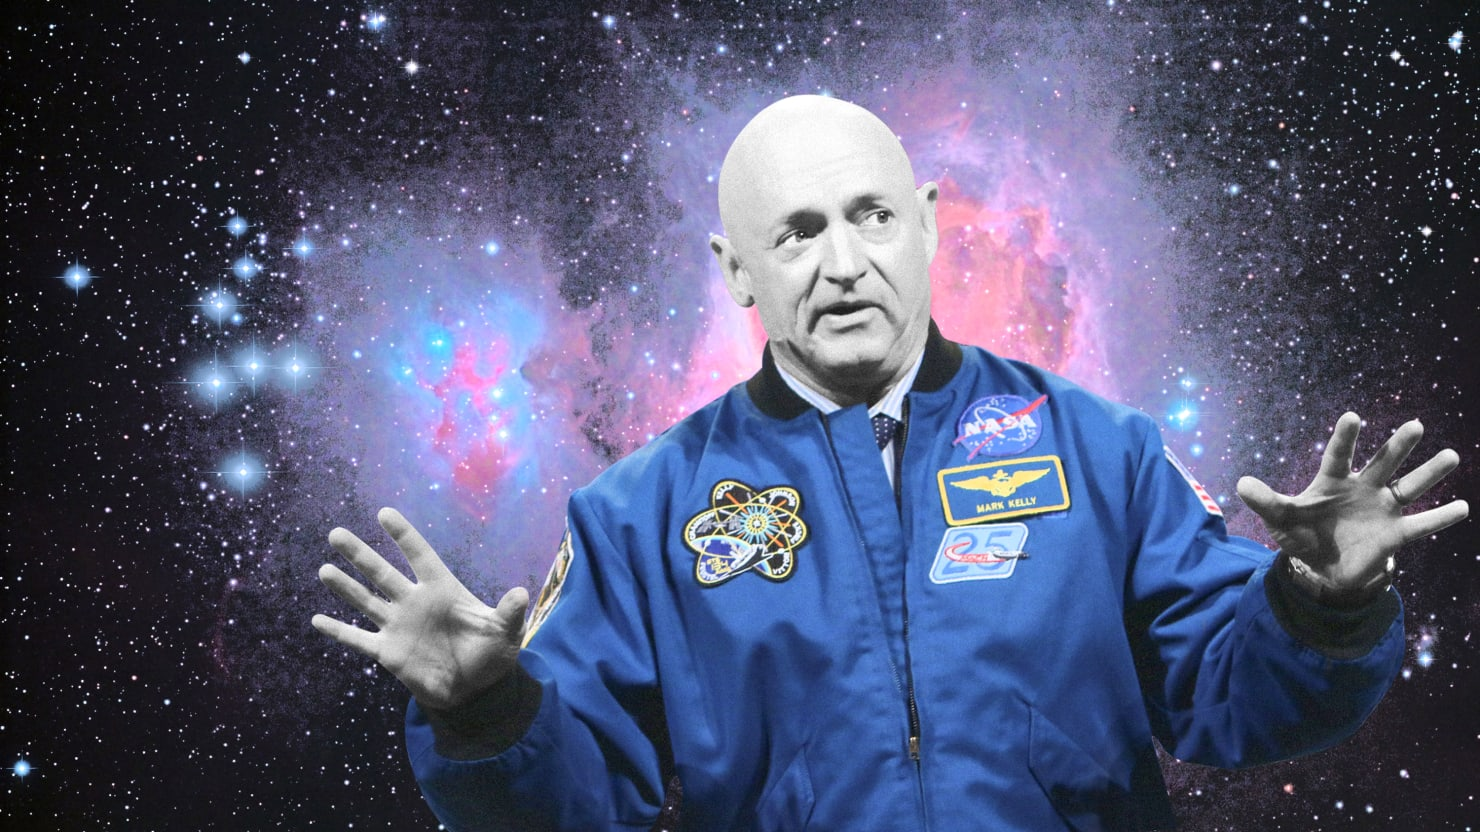 black and white image of mark kelly in nasa astronaut uniform with universe of stars behind him gabby giffords john mccain democrat arizona space force climate change environment